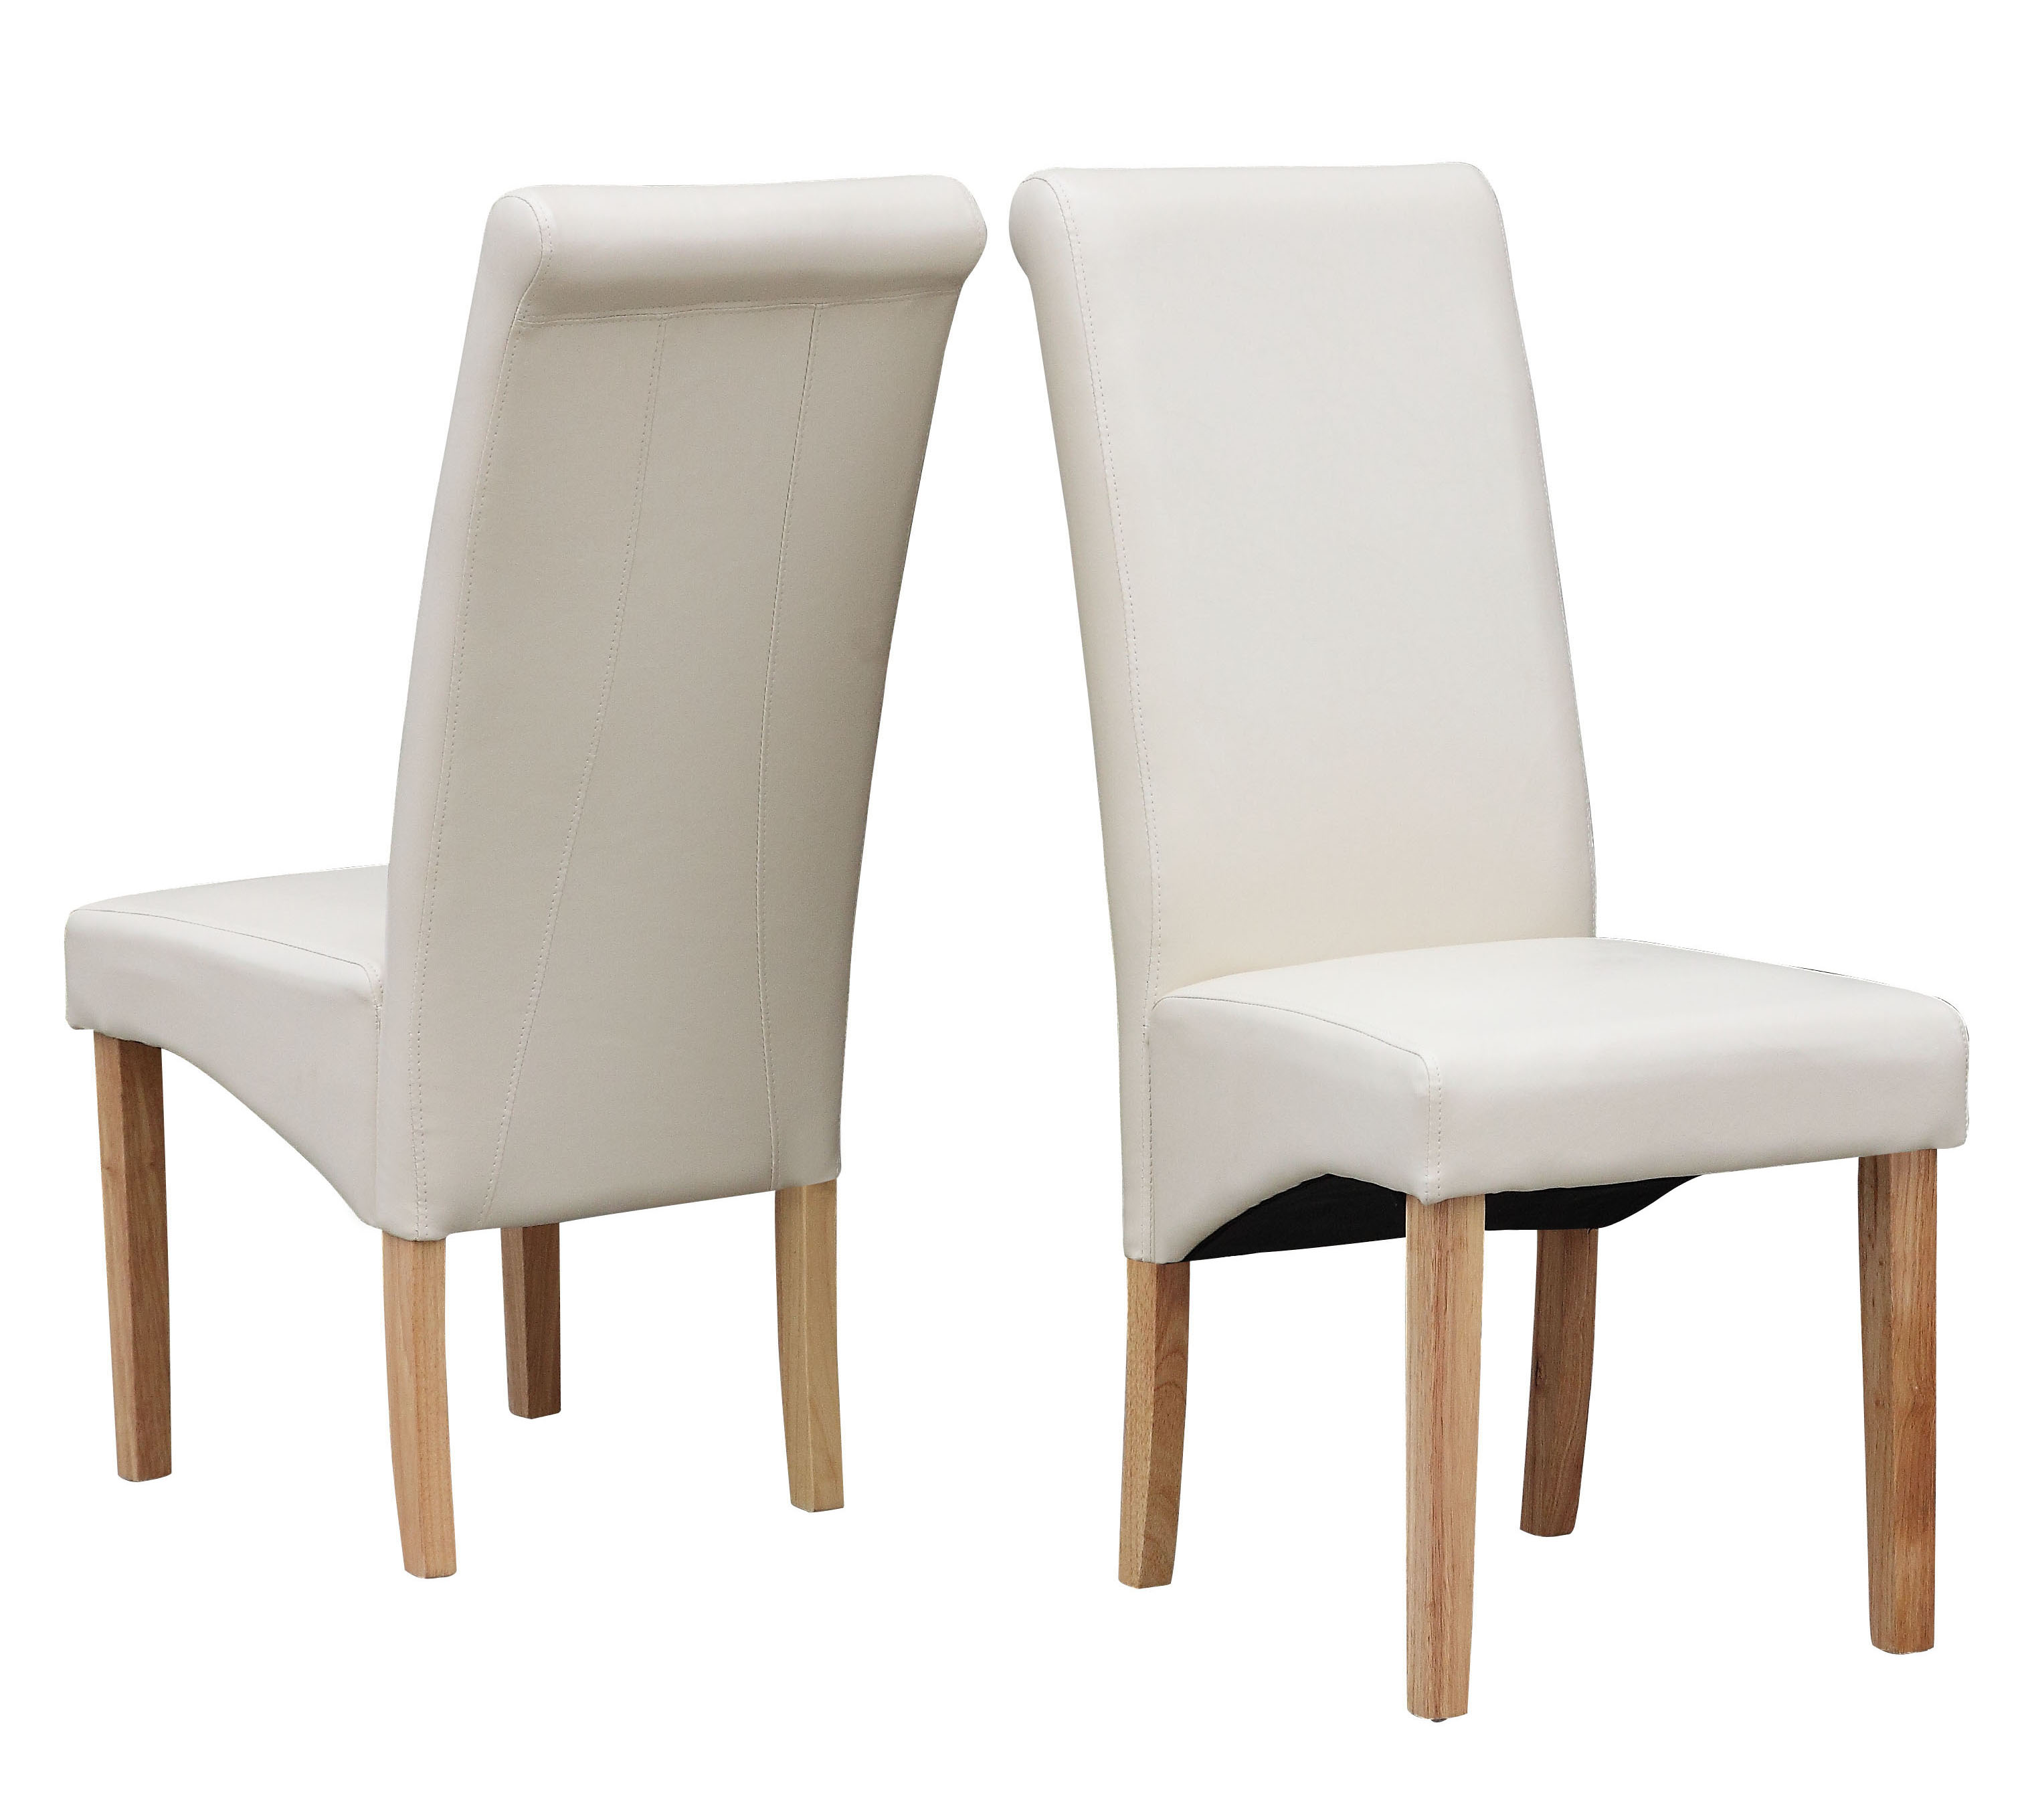 Cream modern dining room chair faux leather roll top scroll high back solid wood ebay - Wooden dining room chairs ...